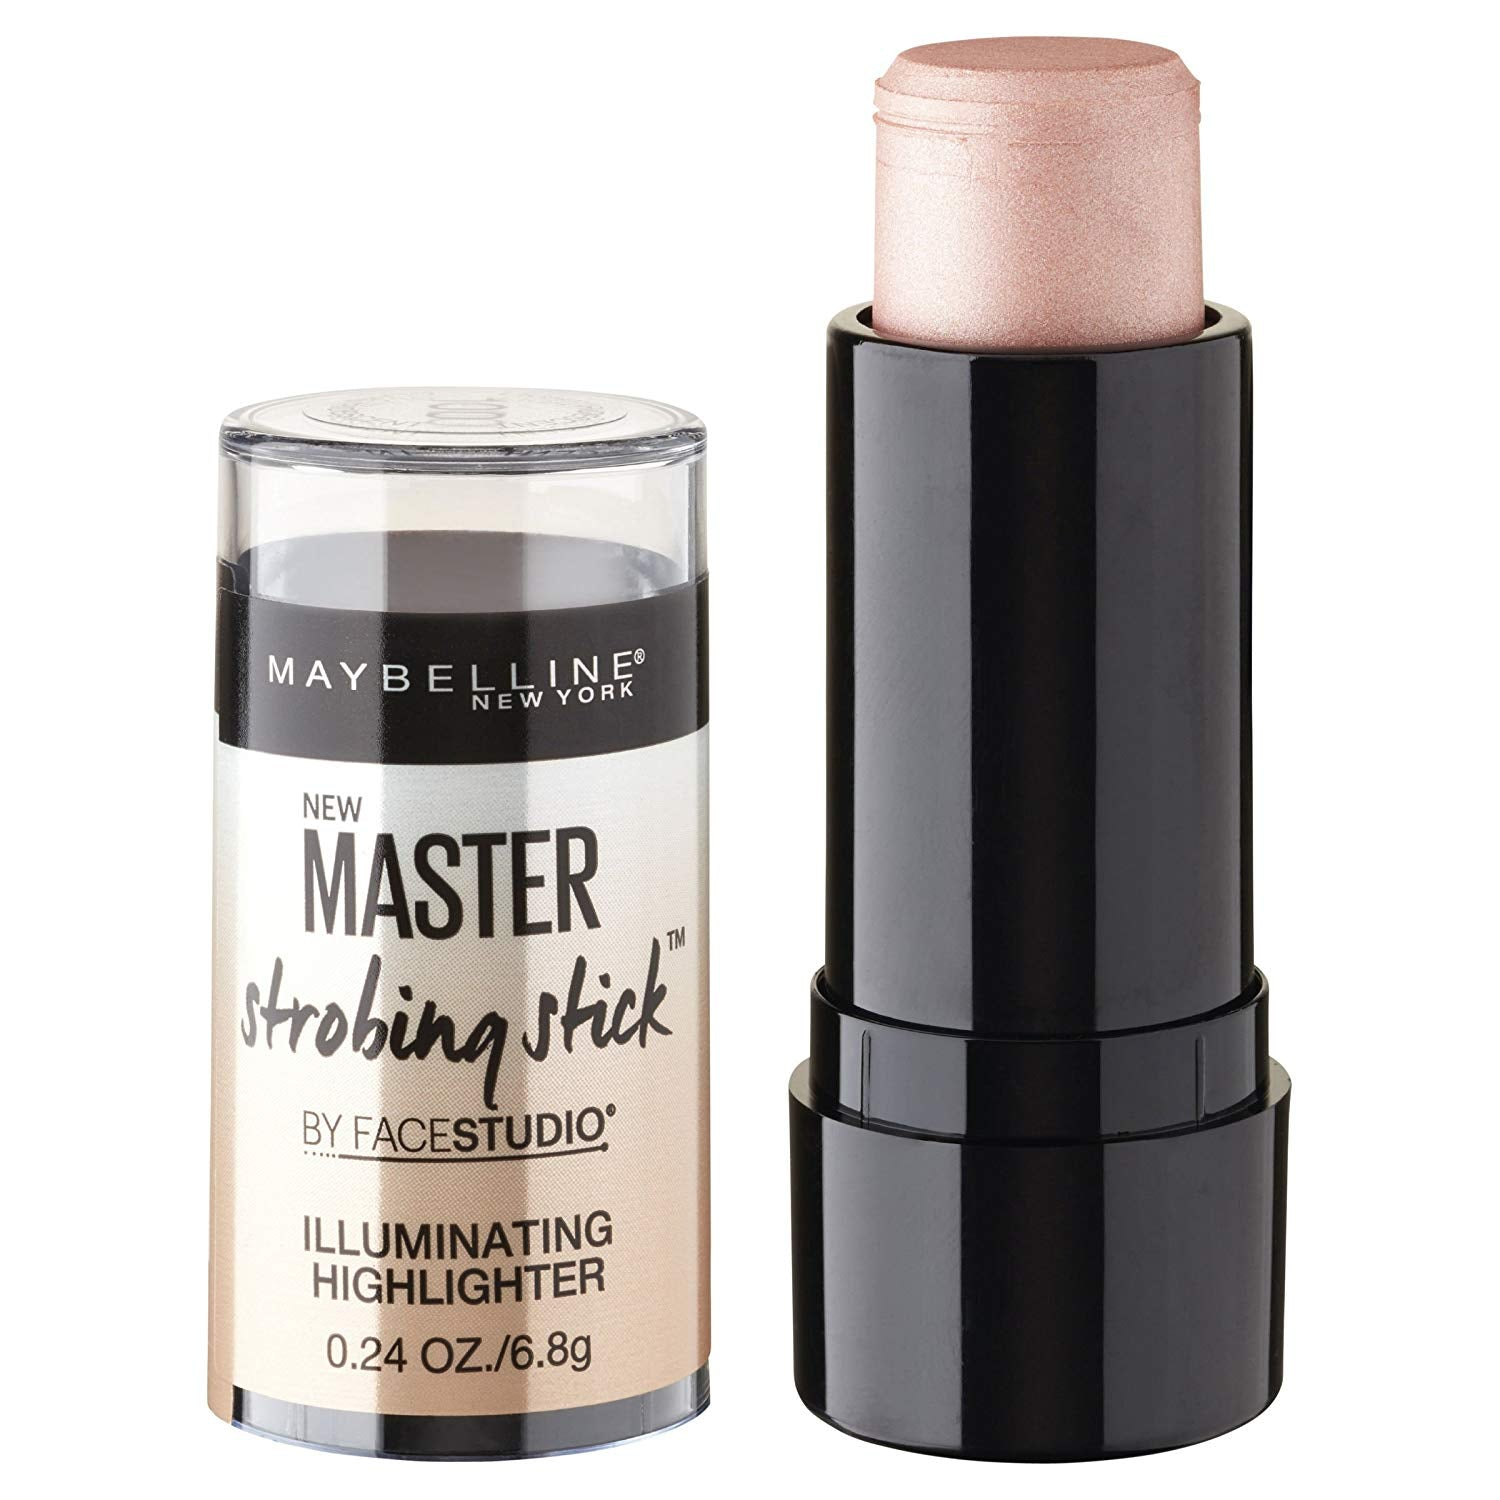 Maybelline Facestudio Master Strobing Highlighter Stick